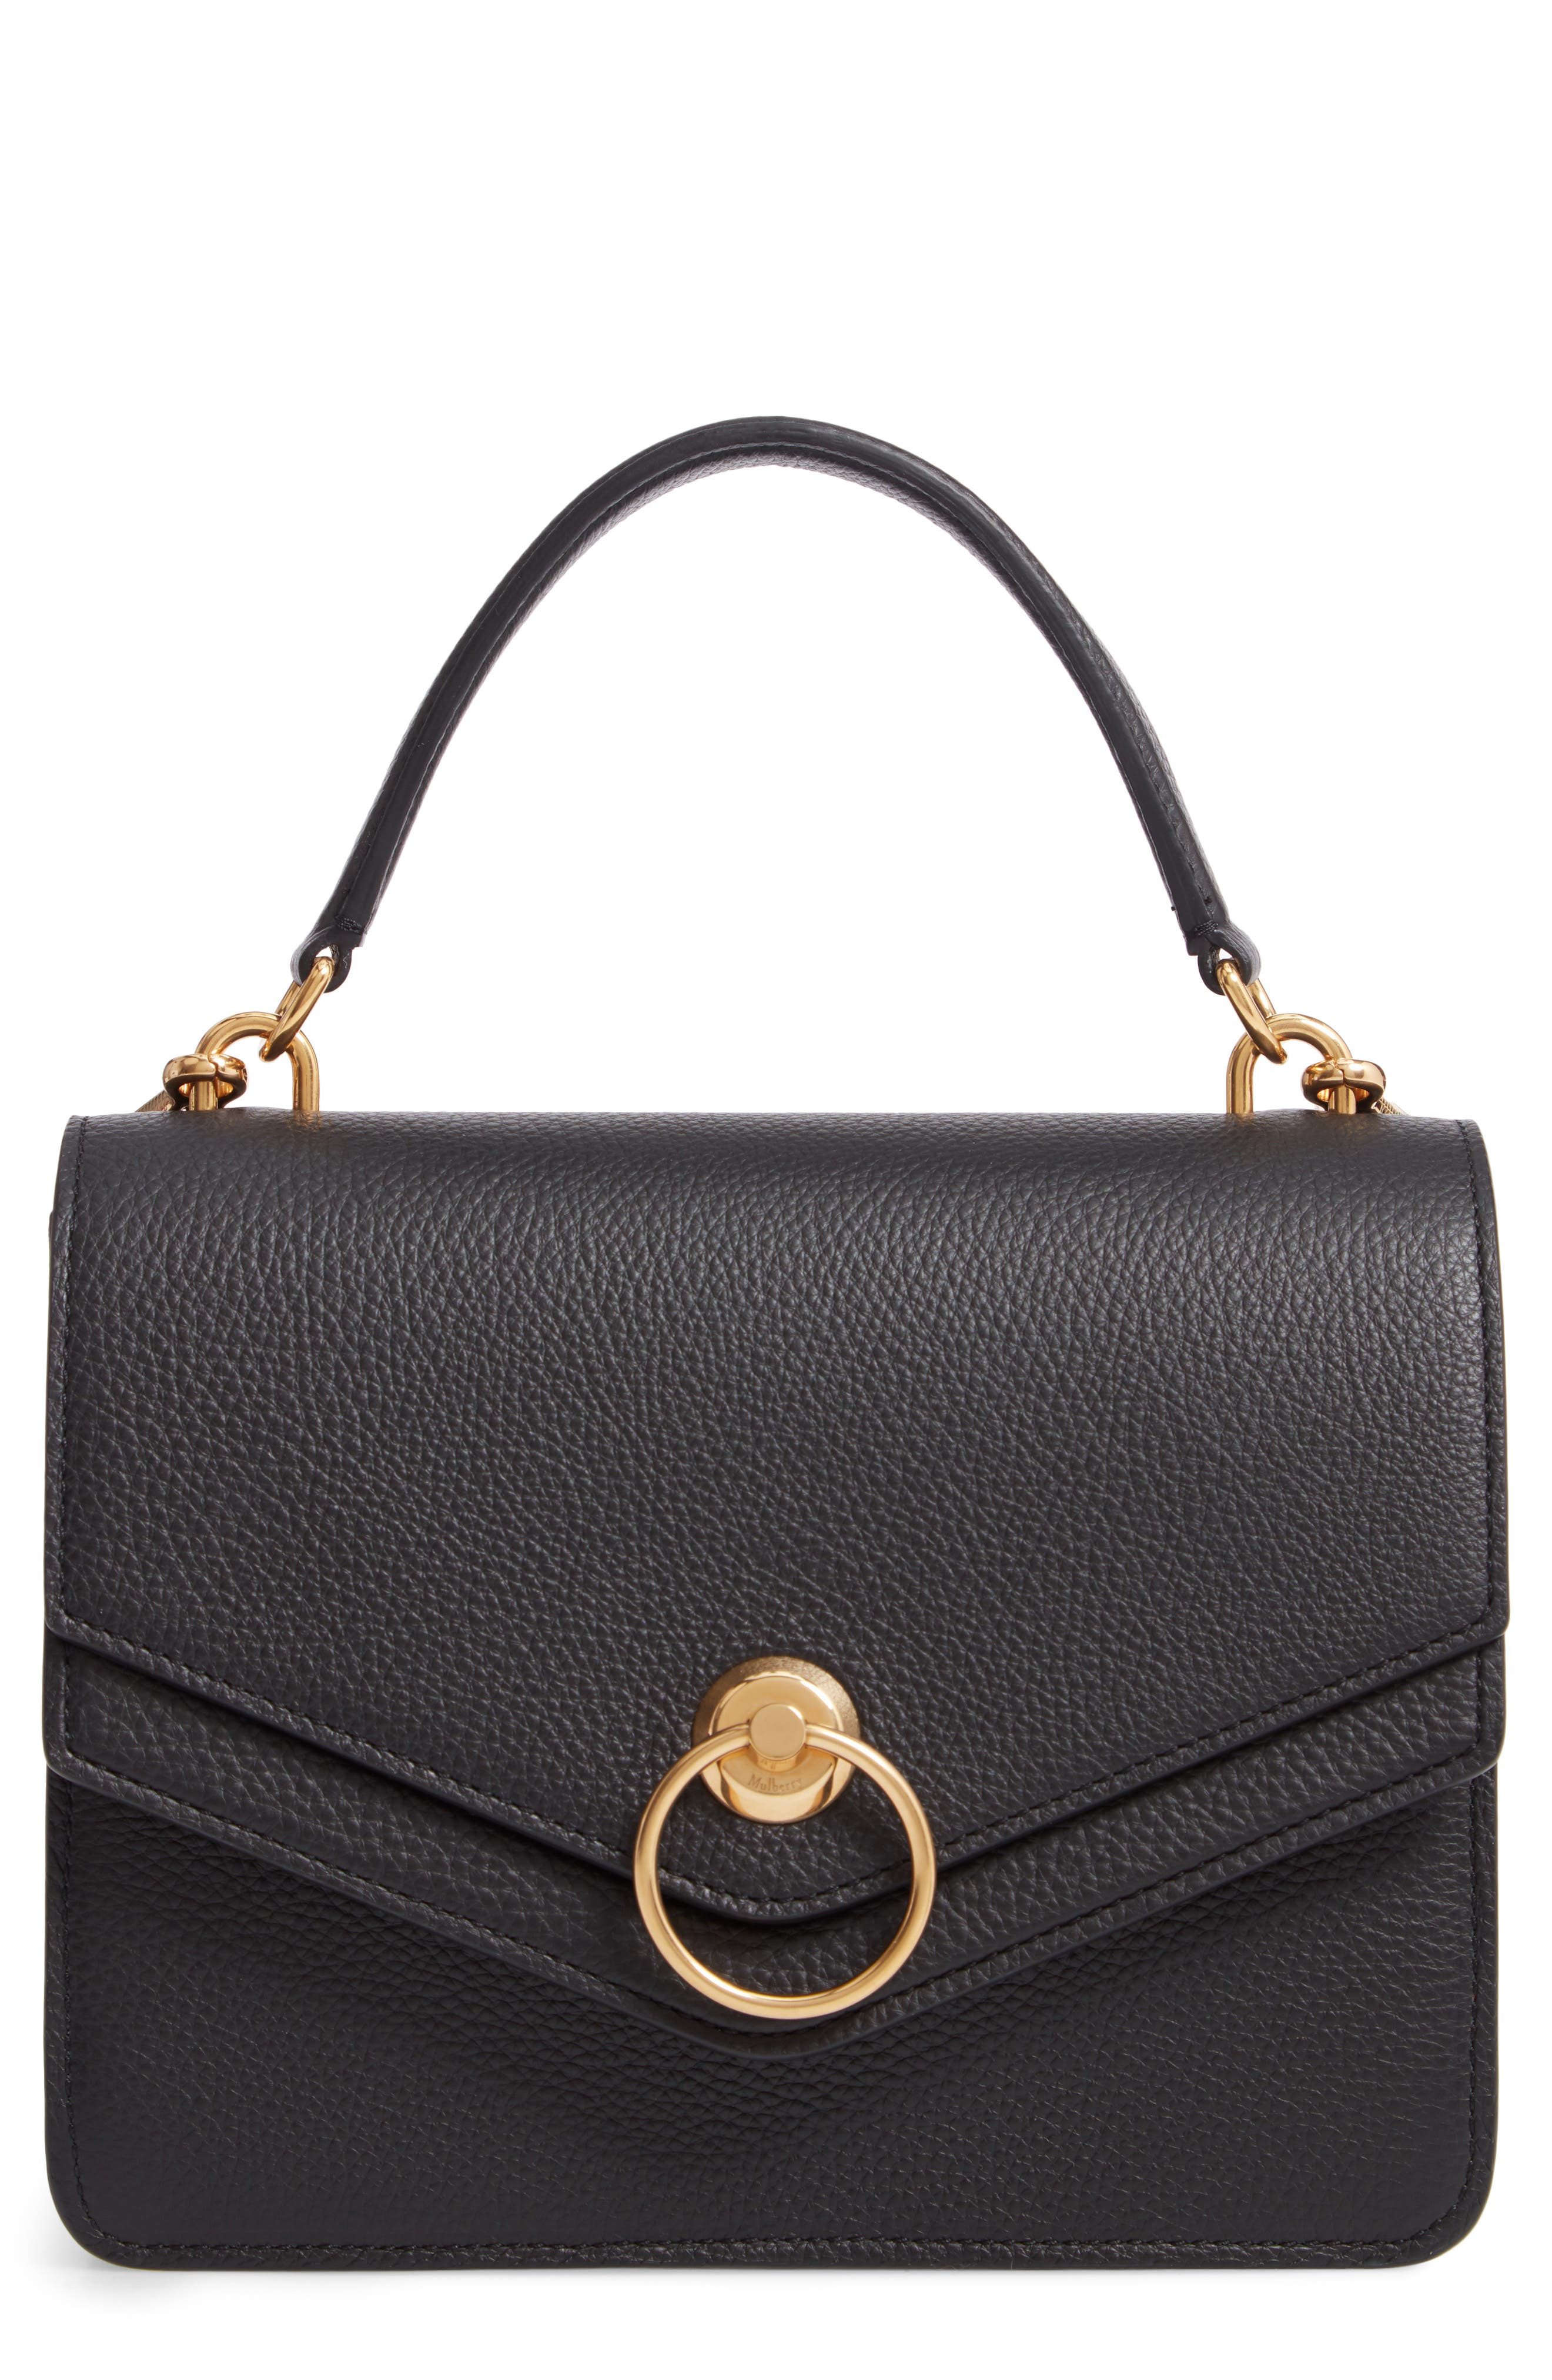 Mulberrry Harlow Calfskin Leather Satchel,                             Main thumbnail 1, color,                             BLACK